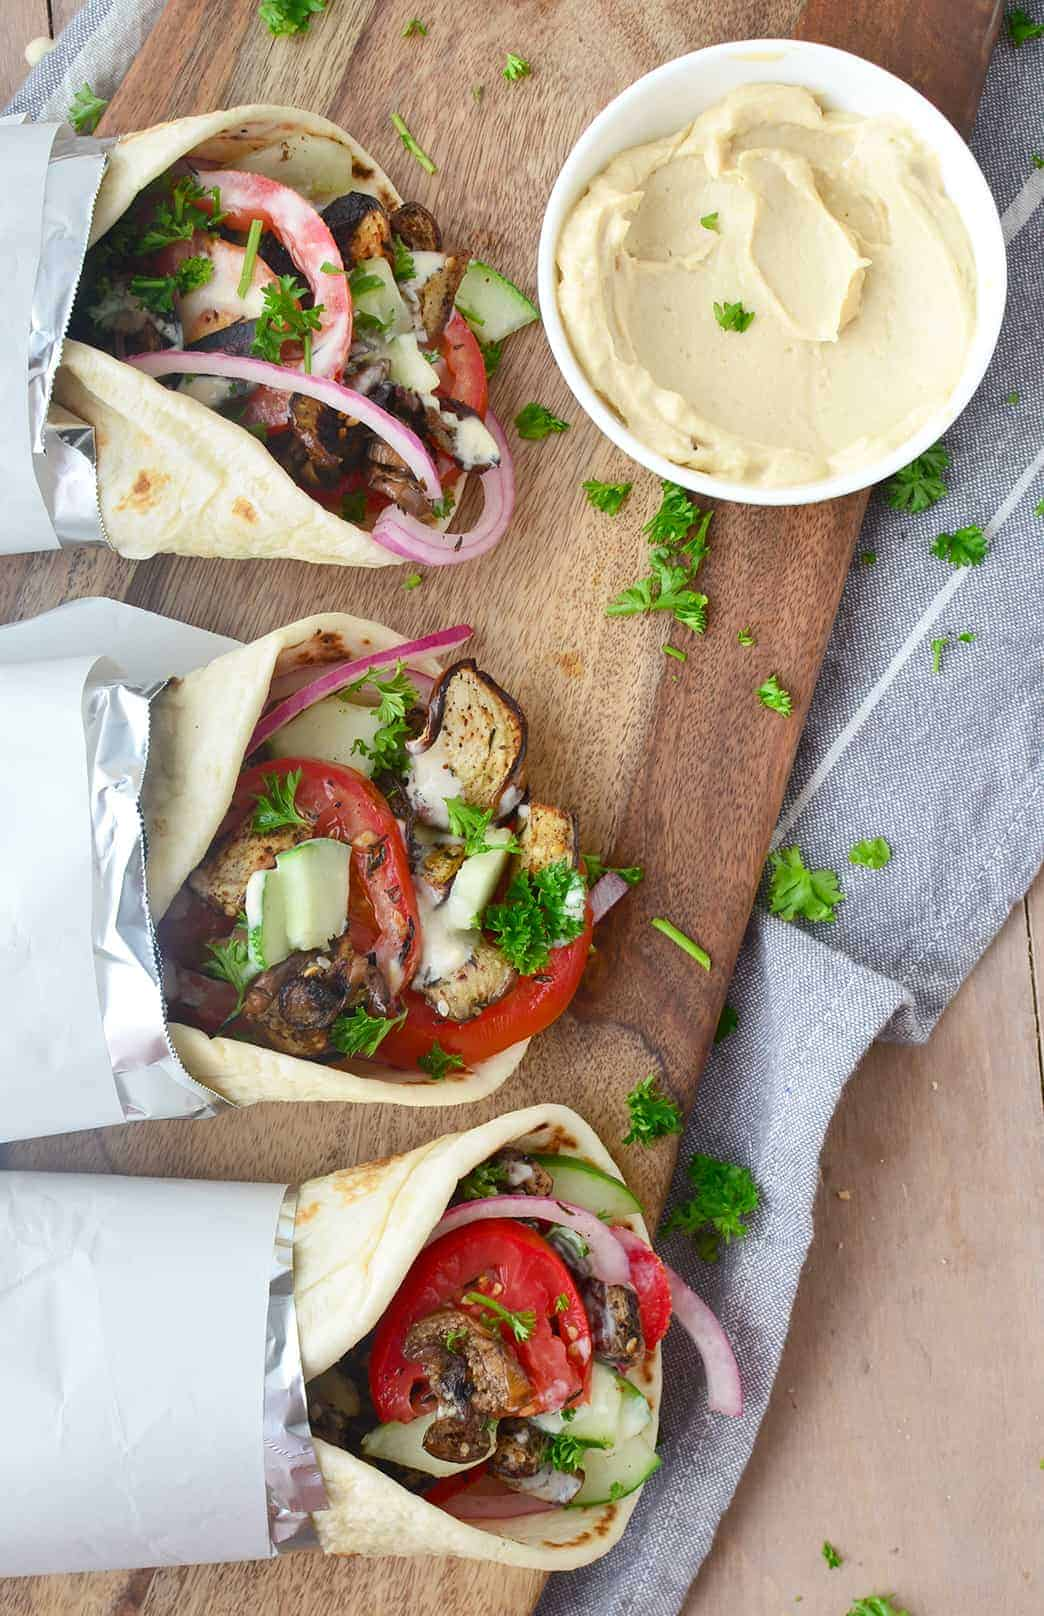 Meaty vegan eggplant gyros stuffed with vegetables, herbs and the best hummus sauce. So good! #vegan #vegetarian | www.delishknowledge.com